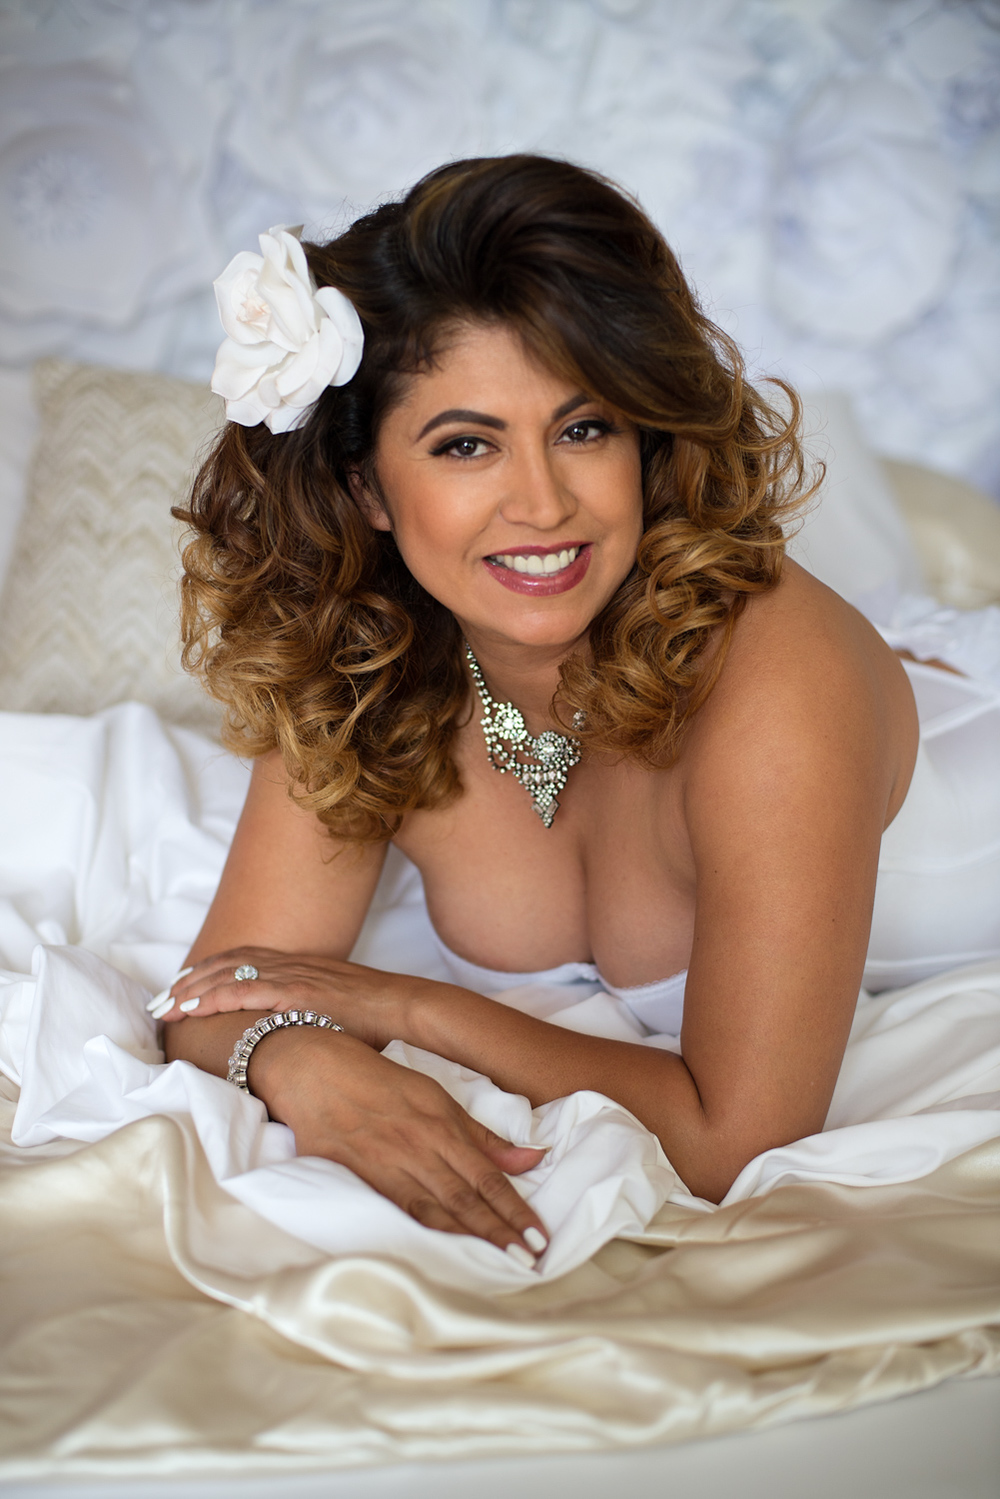 OksanART_boudoir_photography__inland_empire_rancho_cucamonga_21.jpg